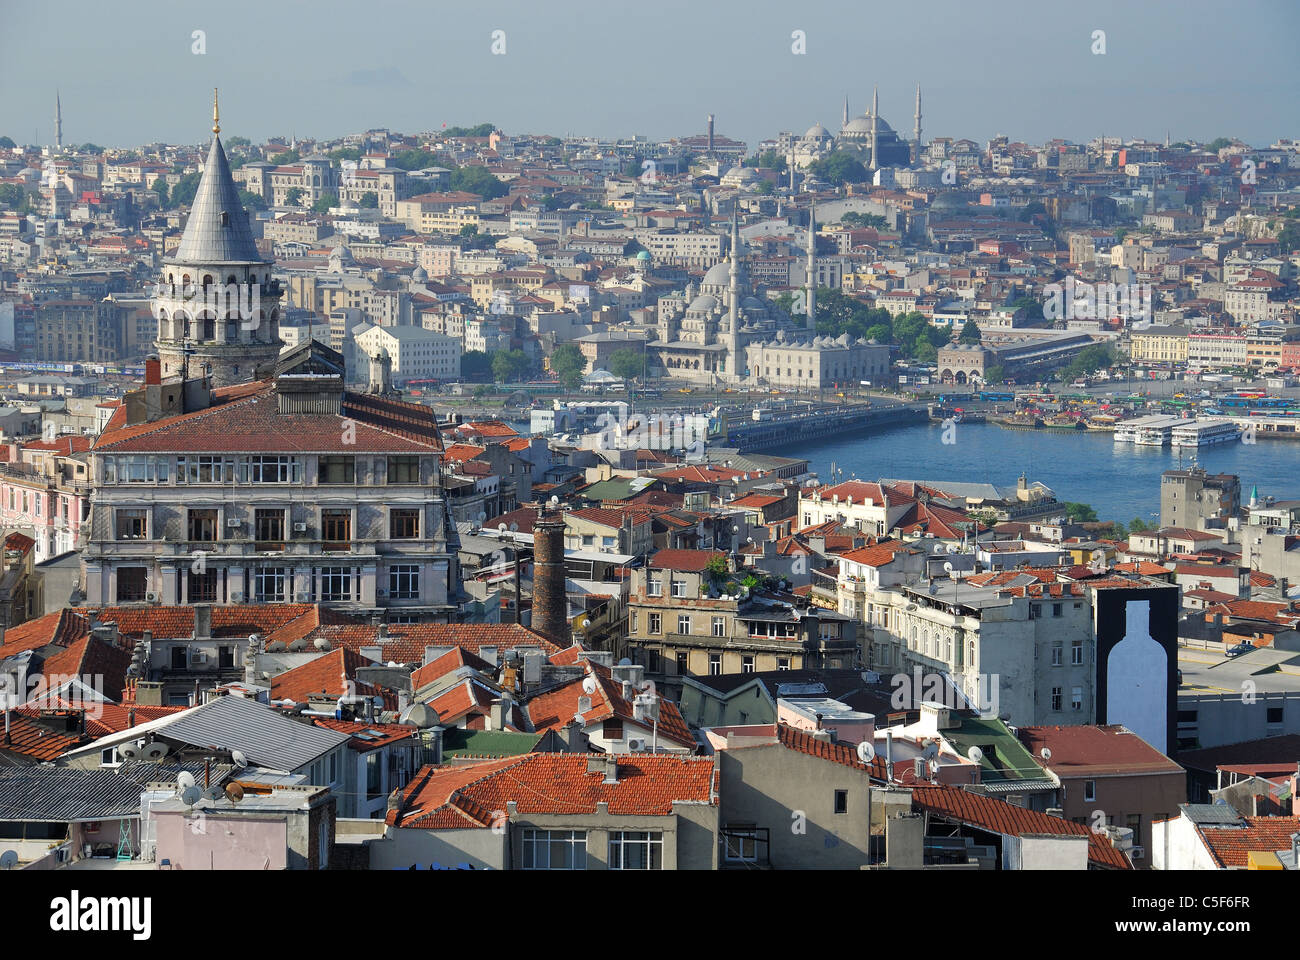 ISTANBUL, TURKEY. A view over Beyoglu district to the Golden Horn and the bazaar district of the city. 2011. - Stock Image